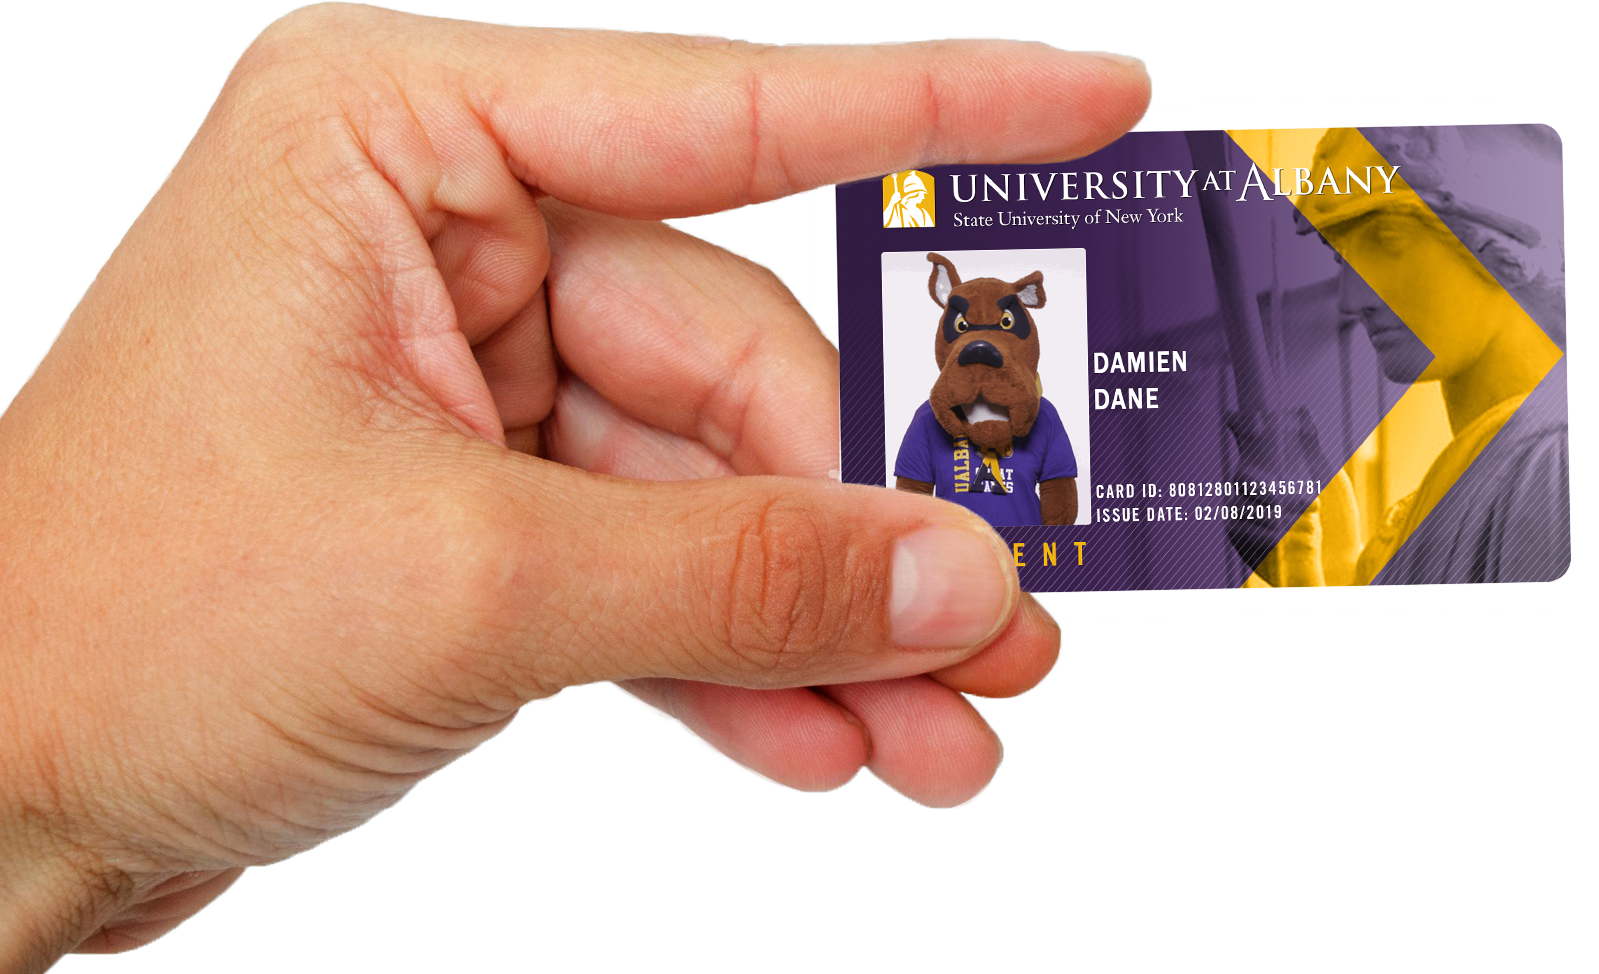 Hand holding a purple ID card with a dog mascot photographed on it. Gold chevron shape on the card